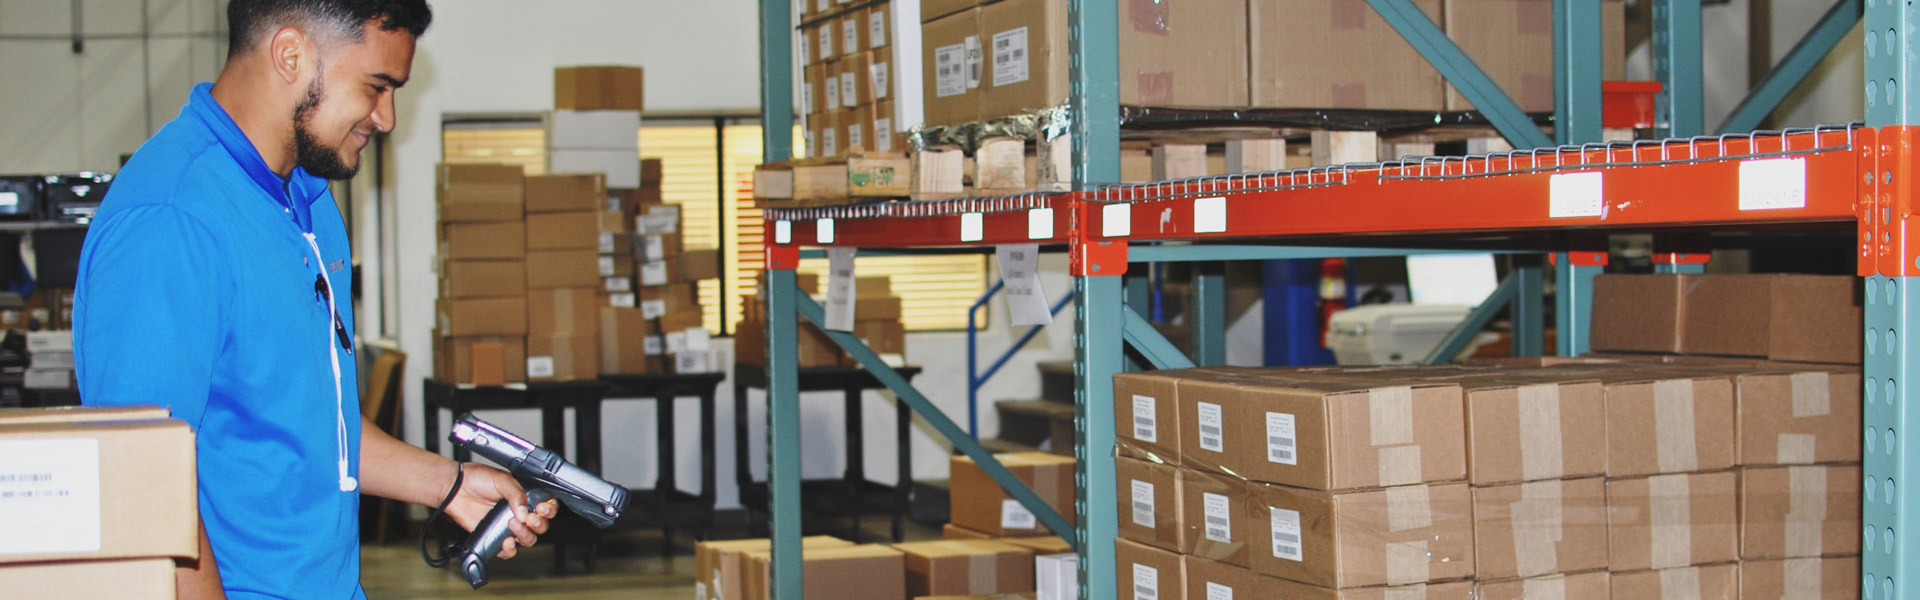 3PL Pharmaceutical Warehousing and Distribution